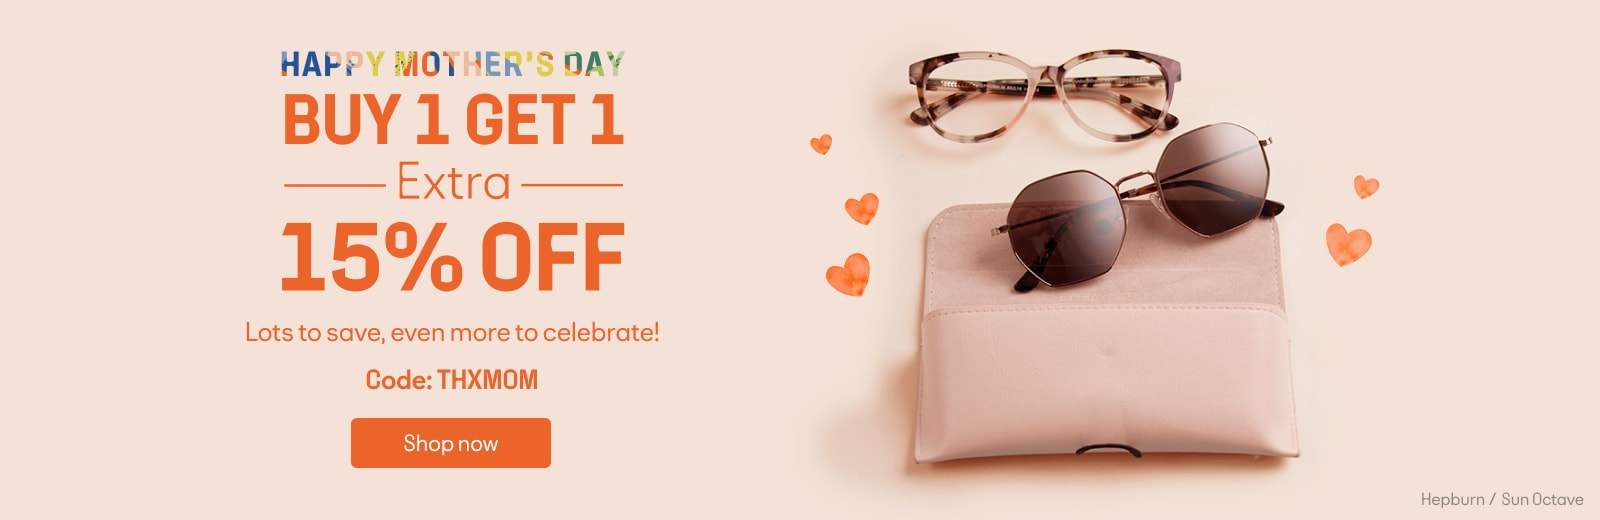 HAPPY MOTHER'S DAY  BUY 1 GET 1 FREE  +15% OFF  Lots to save, even more to celebrate!  Code: THXMOM